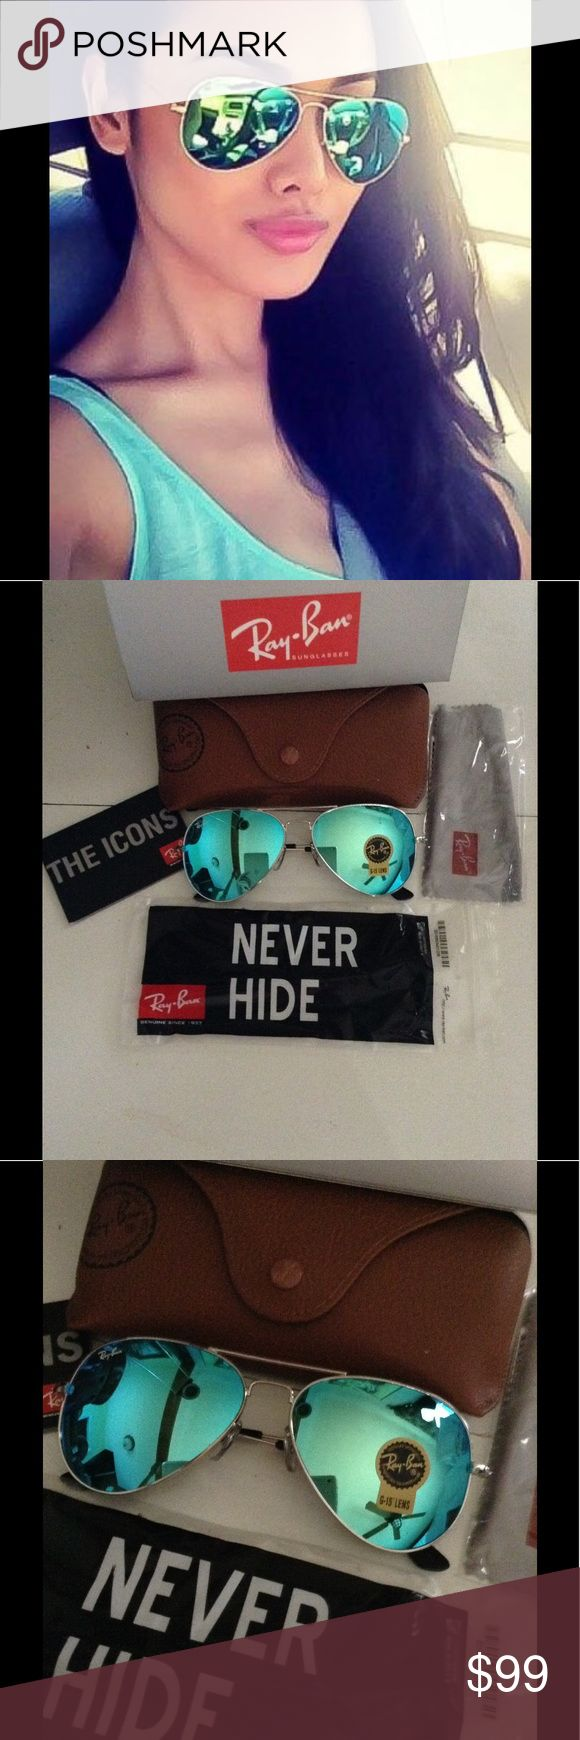 🌺💥Ray Ban sunglasses Aviator Blue / silver FRM NWT Ray Ban Sunglasses RB3025.                        Blue flash / mirror lens with SILVER frame             You will receive everything you see in photos. Ray Ban box , Ray Ban Cleaning Cloth , Ray Ban Sunglasses, Ray Ban ICON booklet !   Check out my reviews !! Buy with confidence Ray-Ban Accessories Sunglasses